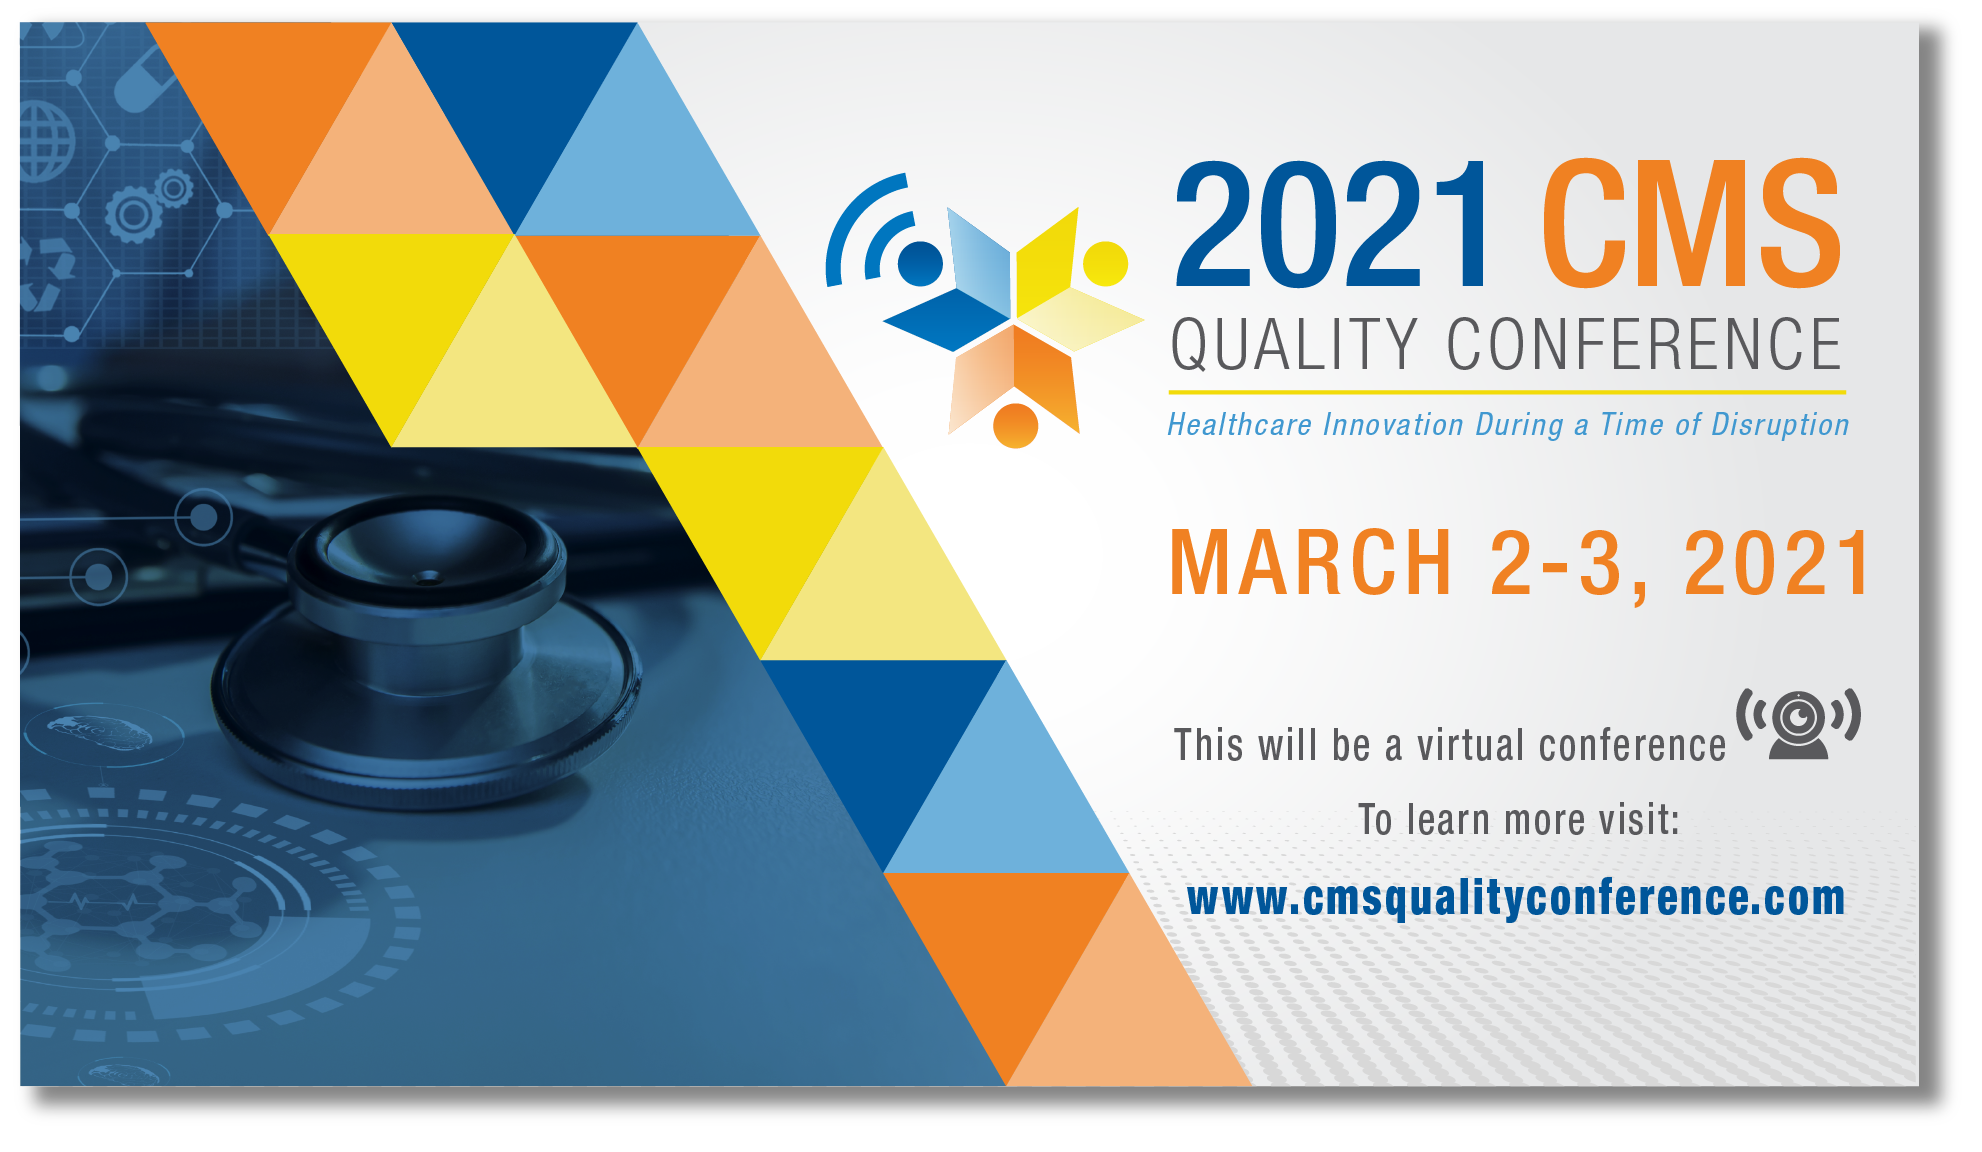 'screenshot of 2021 CMS Quality Conference'